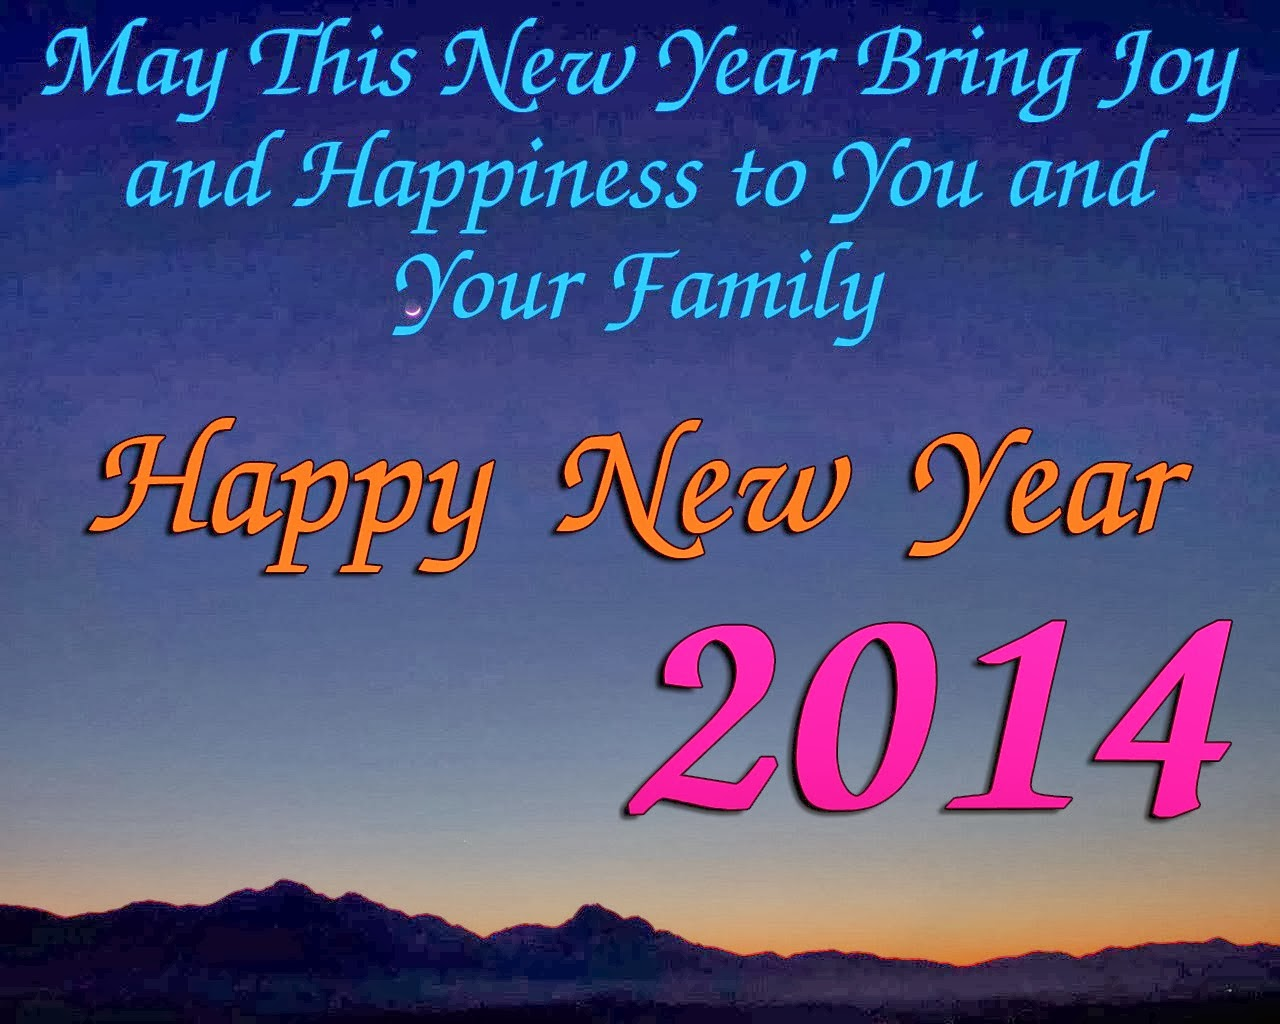 Christmas Day 2013 and Happy New Year 2014 Sayings for Greeting Cards